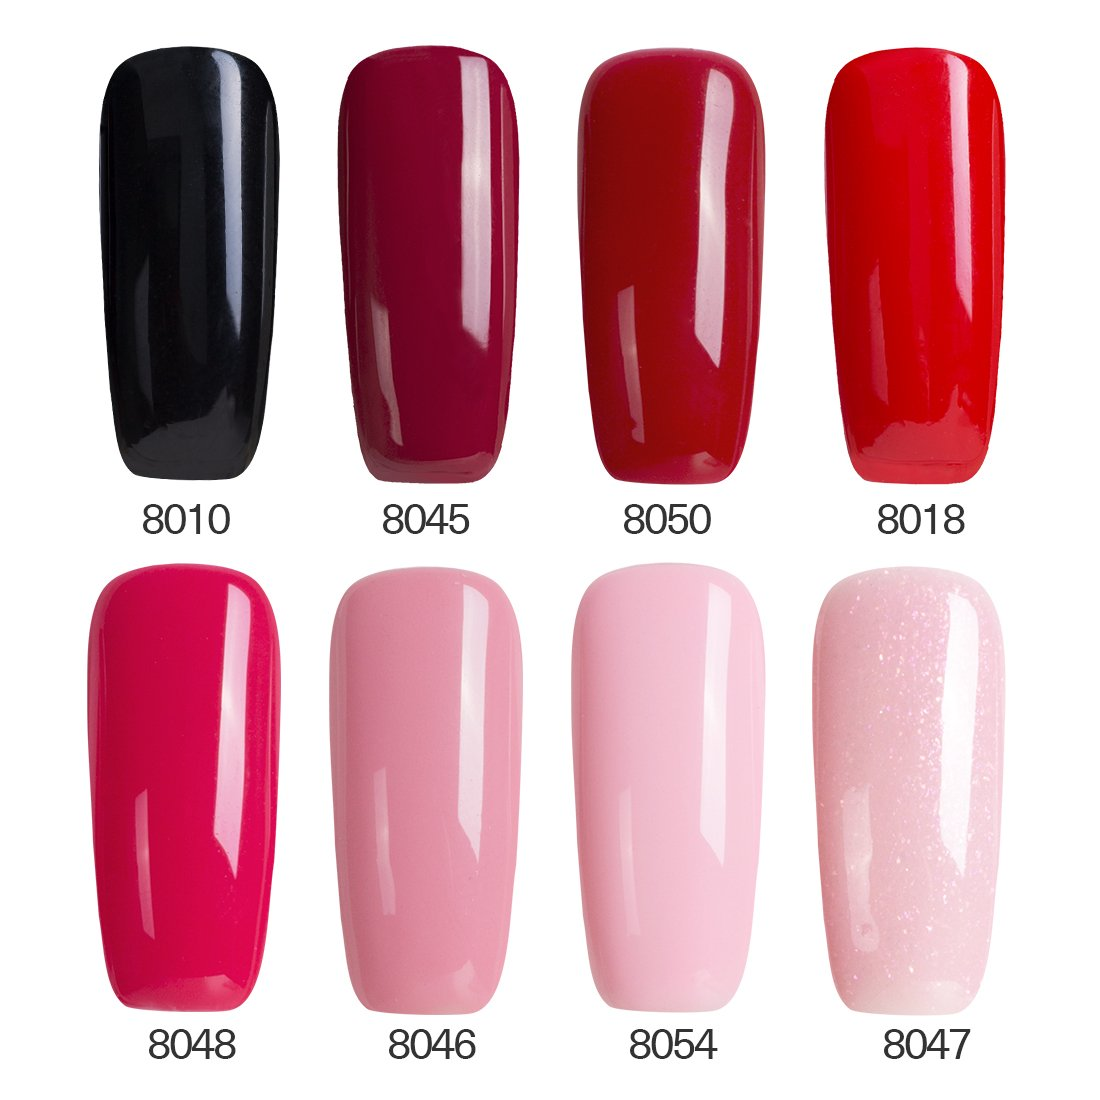 Amazon.com : Modelones Top Coat And Base Coat For Gel Nail